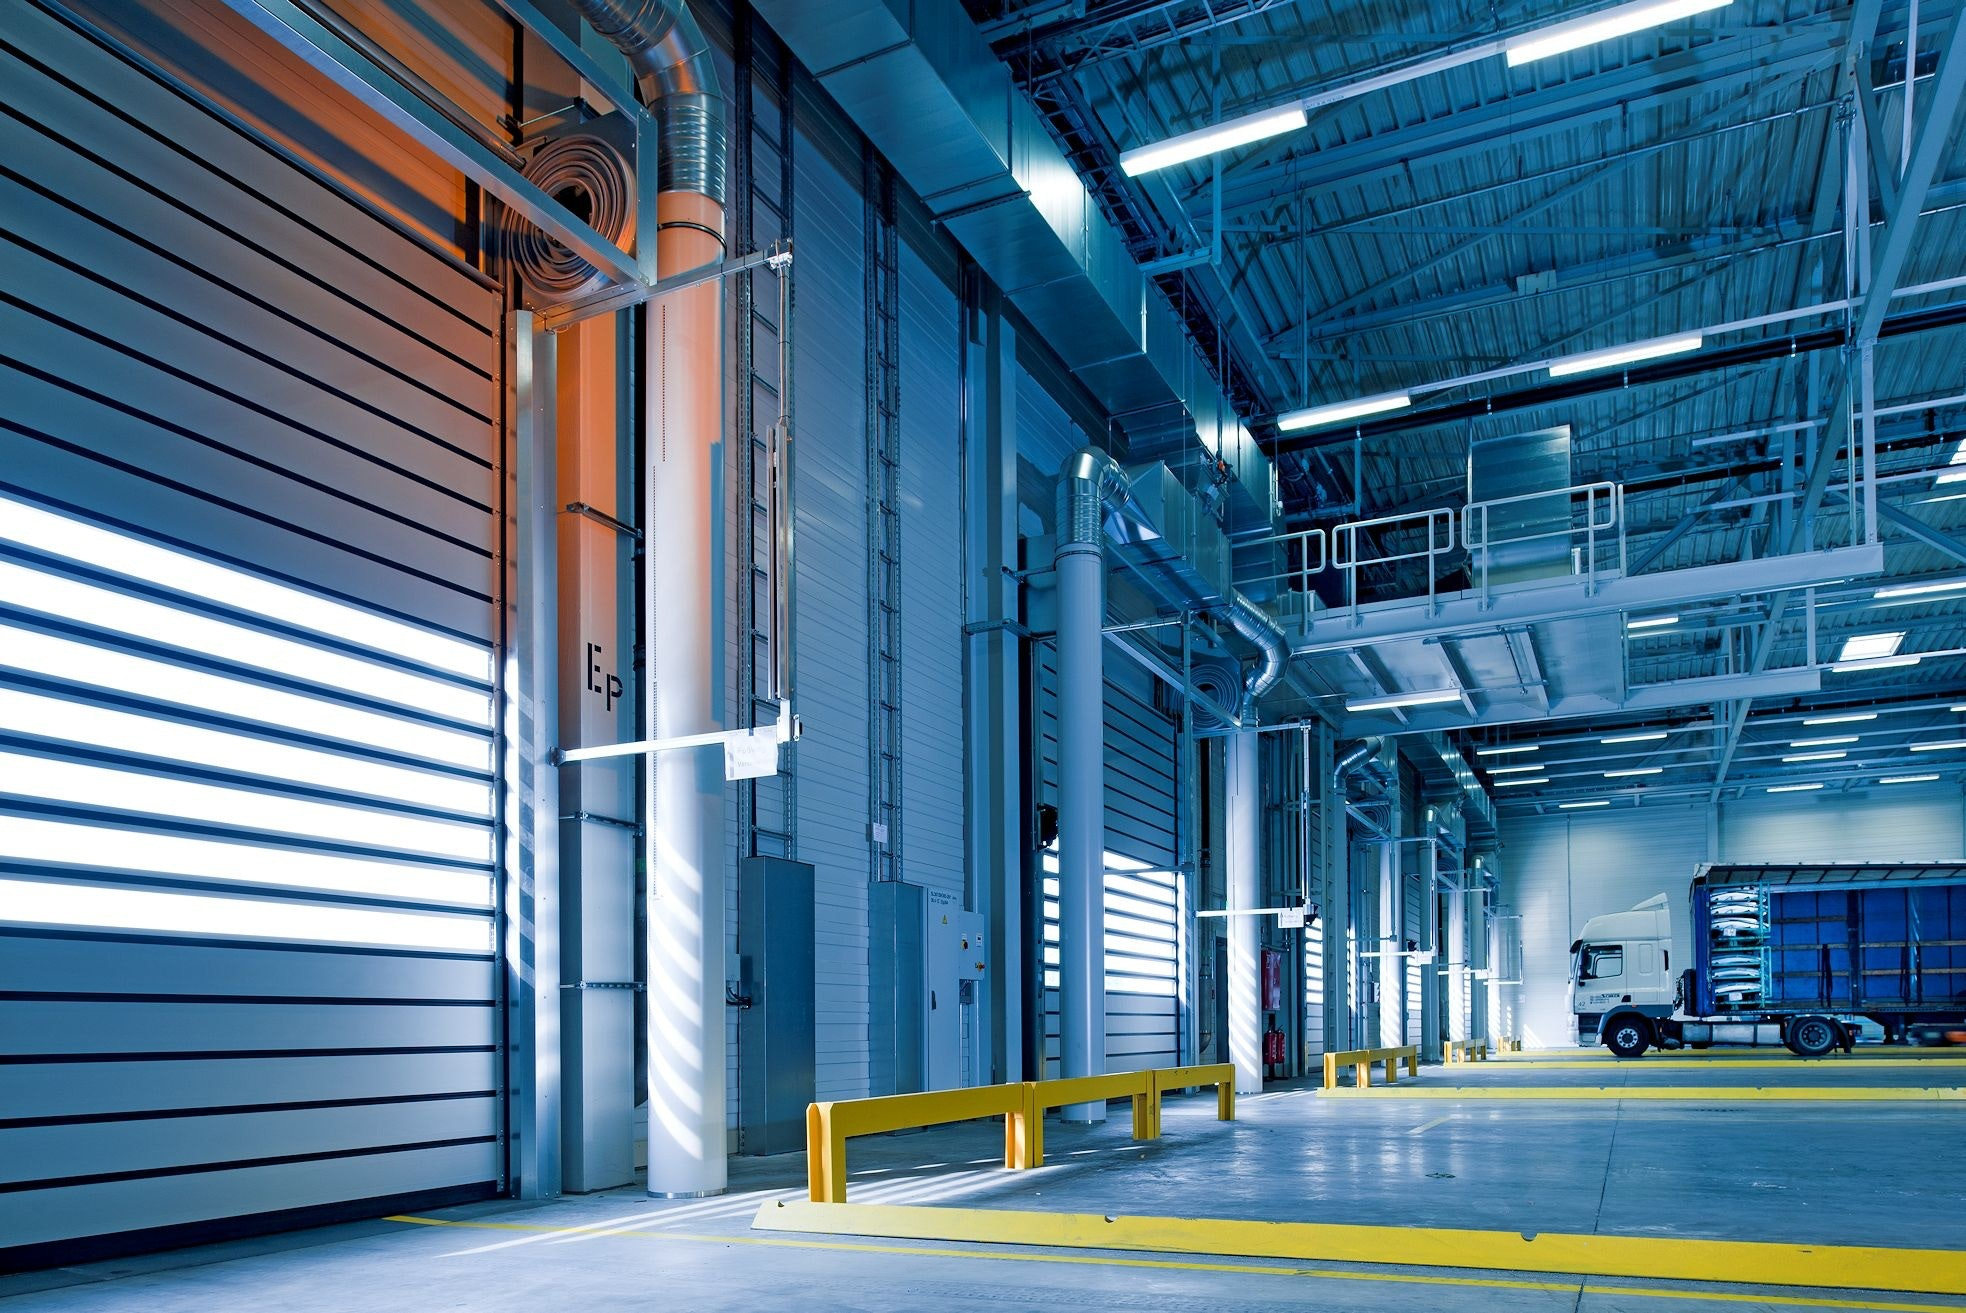 Warehouse Building - Why Your Commercial Real Estate Location Is No Longer Working - And How To Fix It